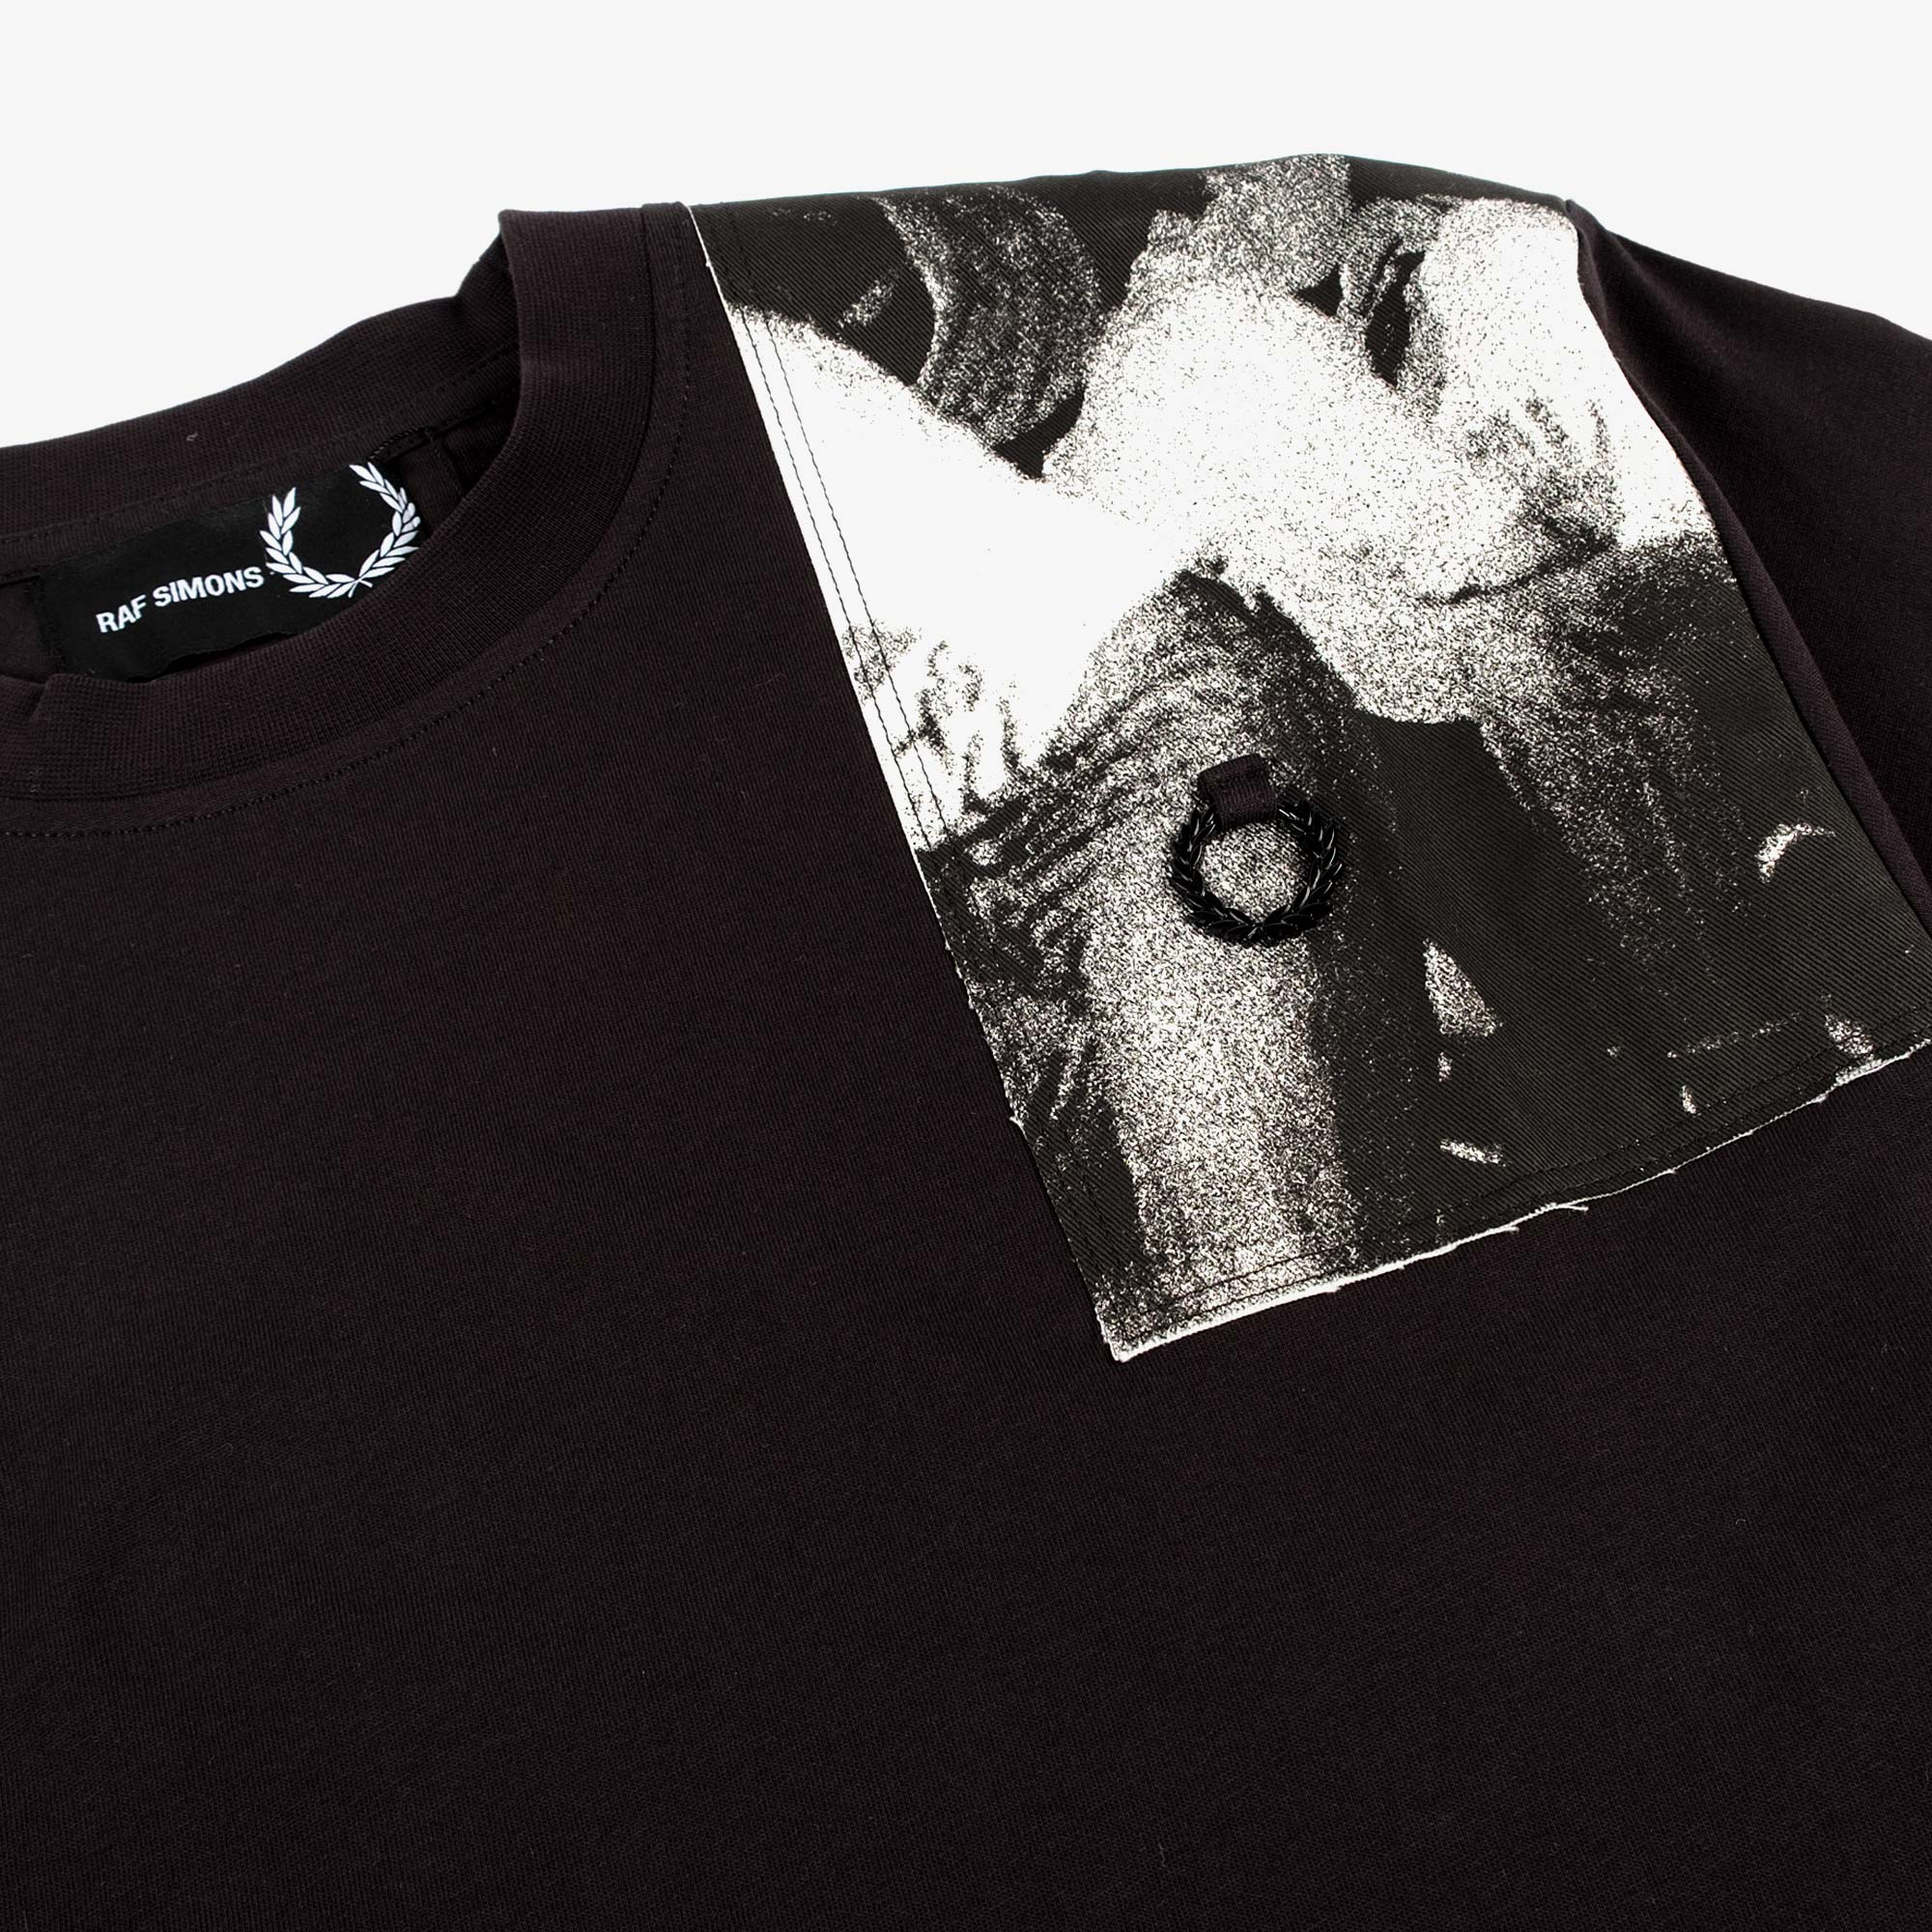 Fred Perry X Raf Simons Oversized Printed Patch Tee - Black 2